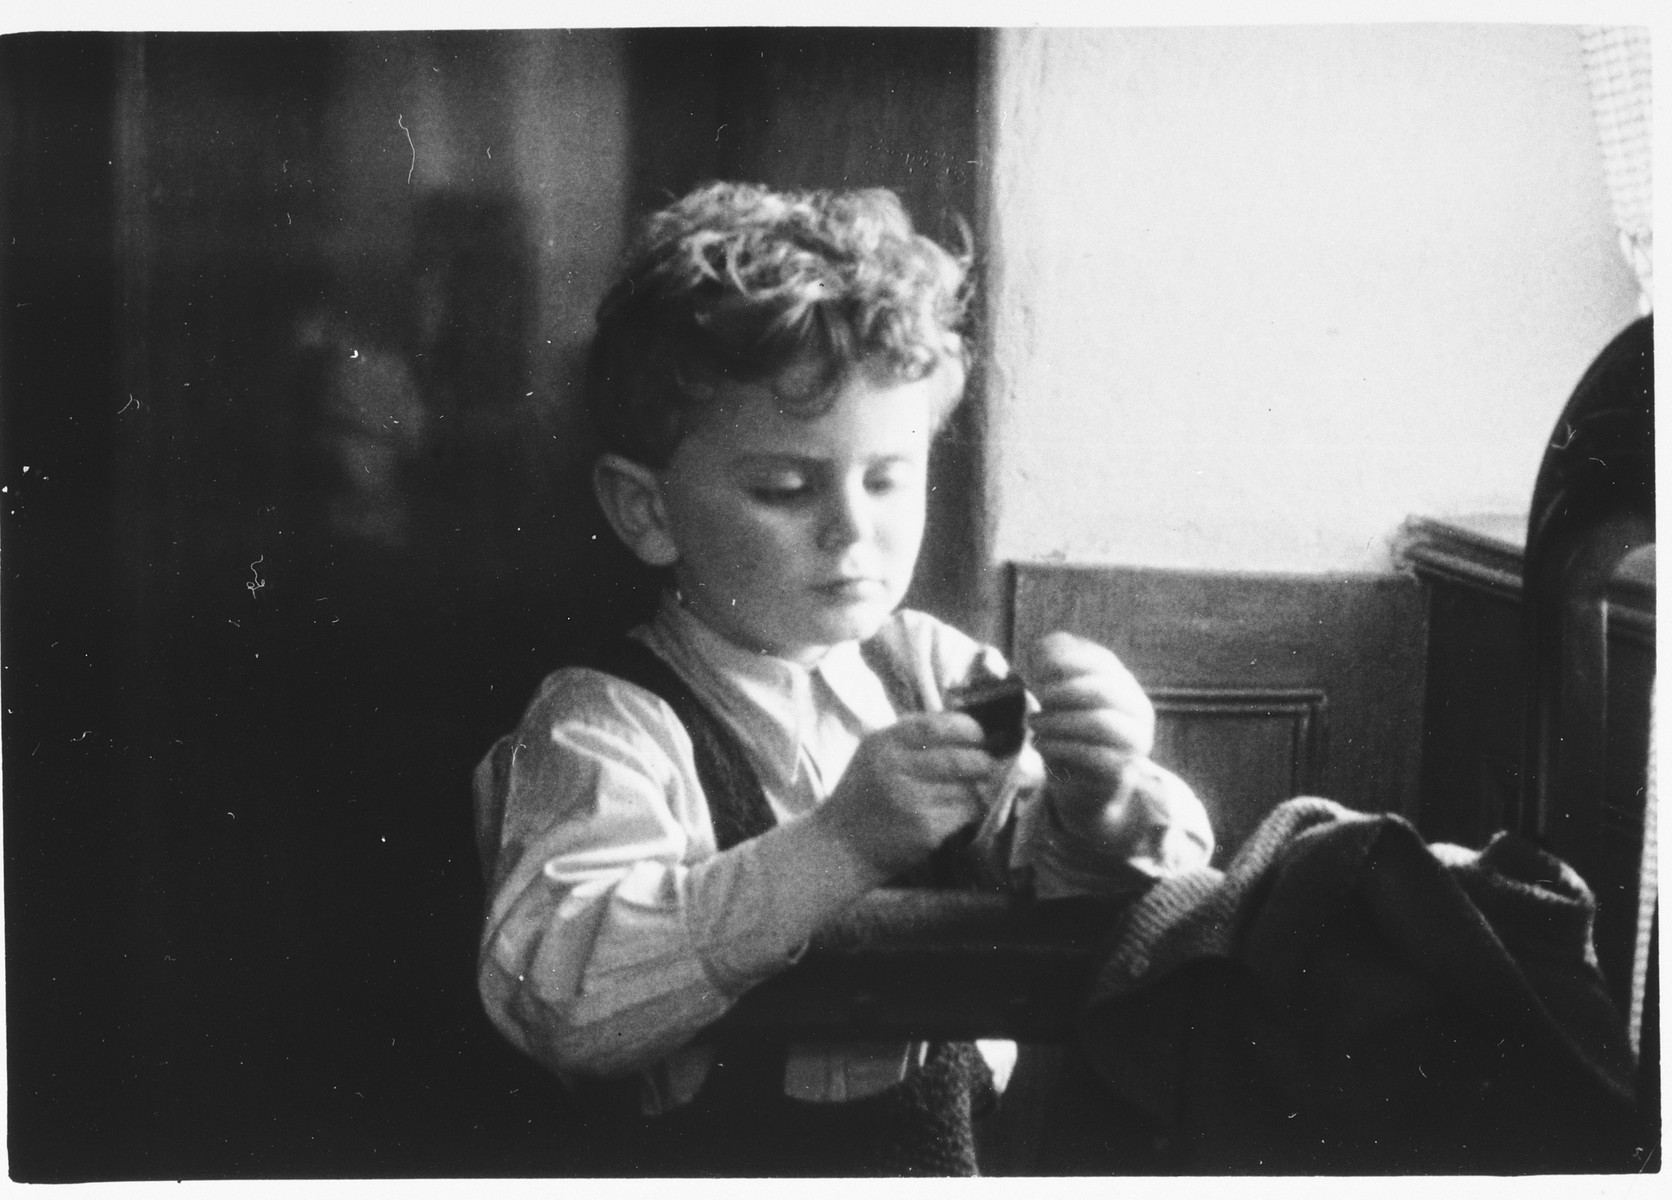 Portrait of Petr Polak playing with a puzzle taken shortly before he was deported to Theresienstadt where he perished.